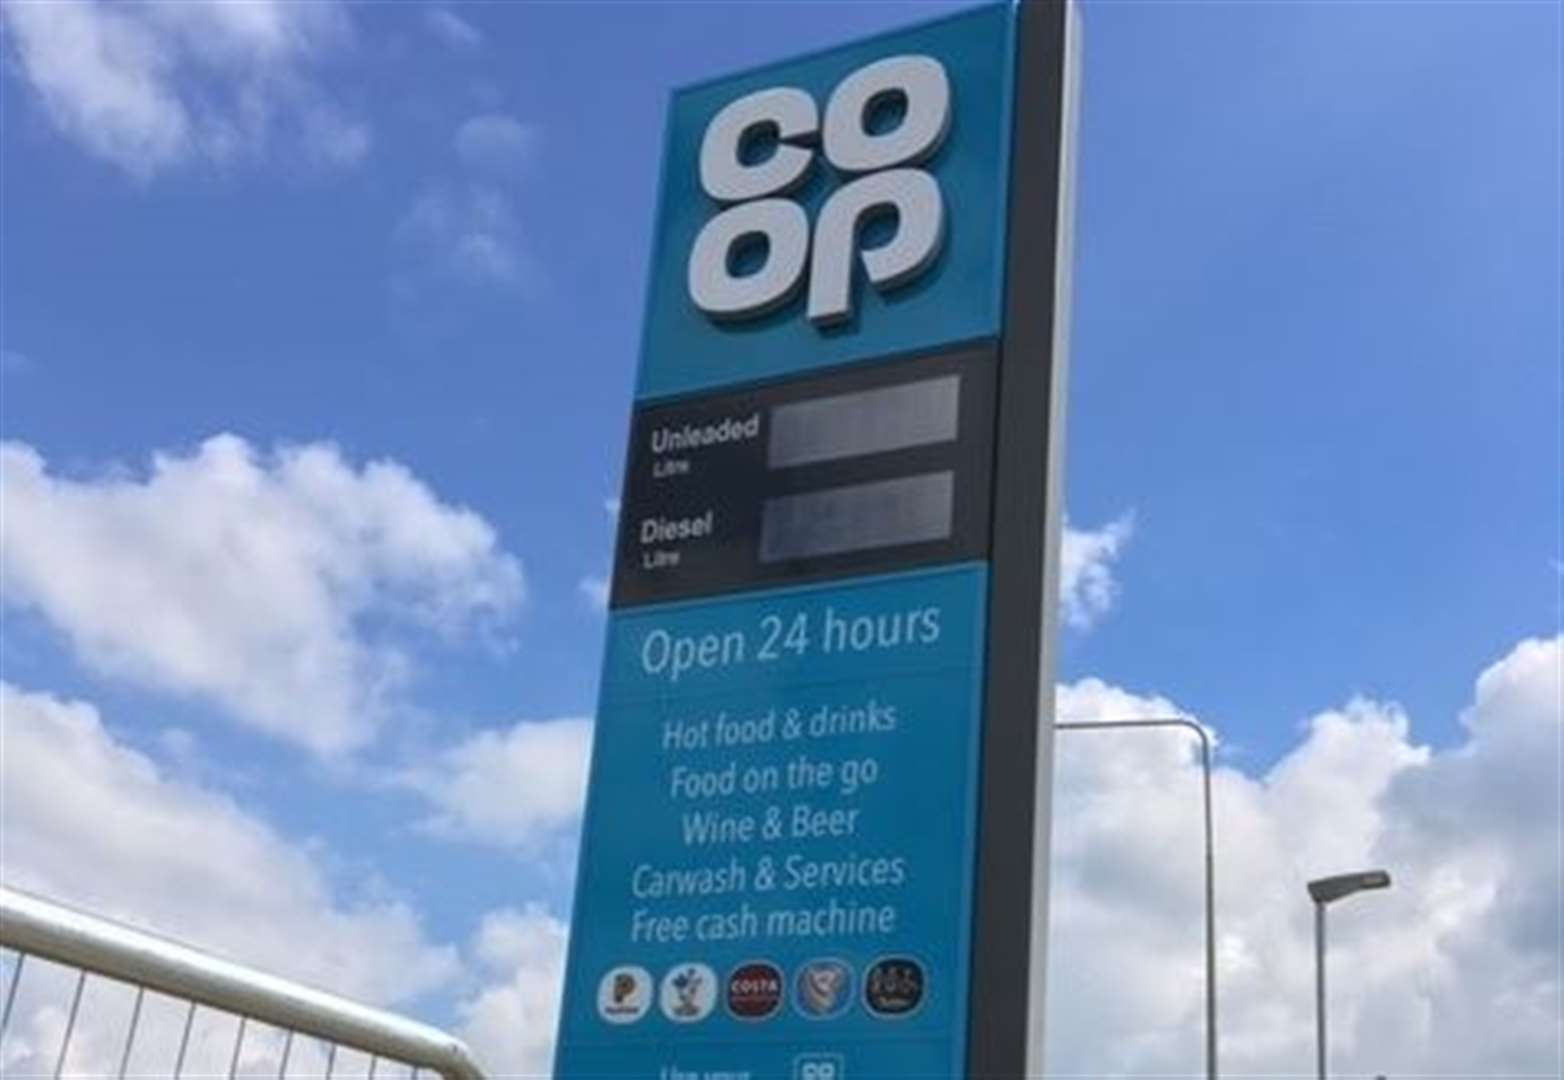 Everything you need to know about the new 24-hour pit-stop opening soon on the A47